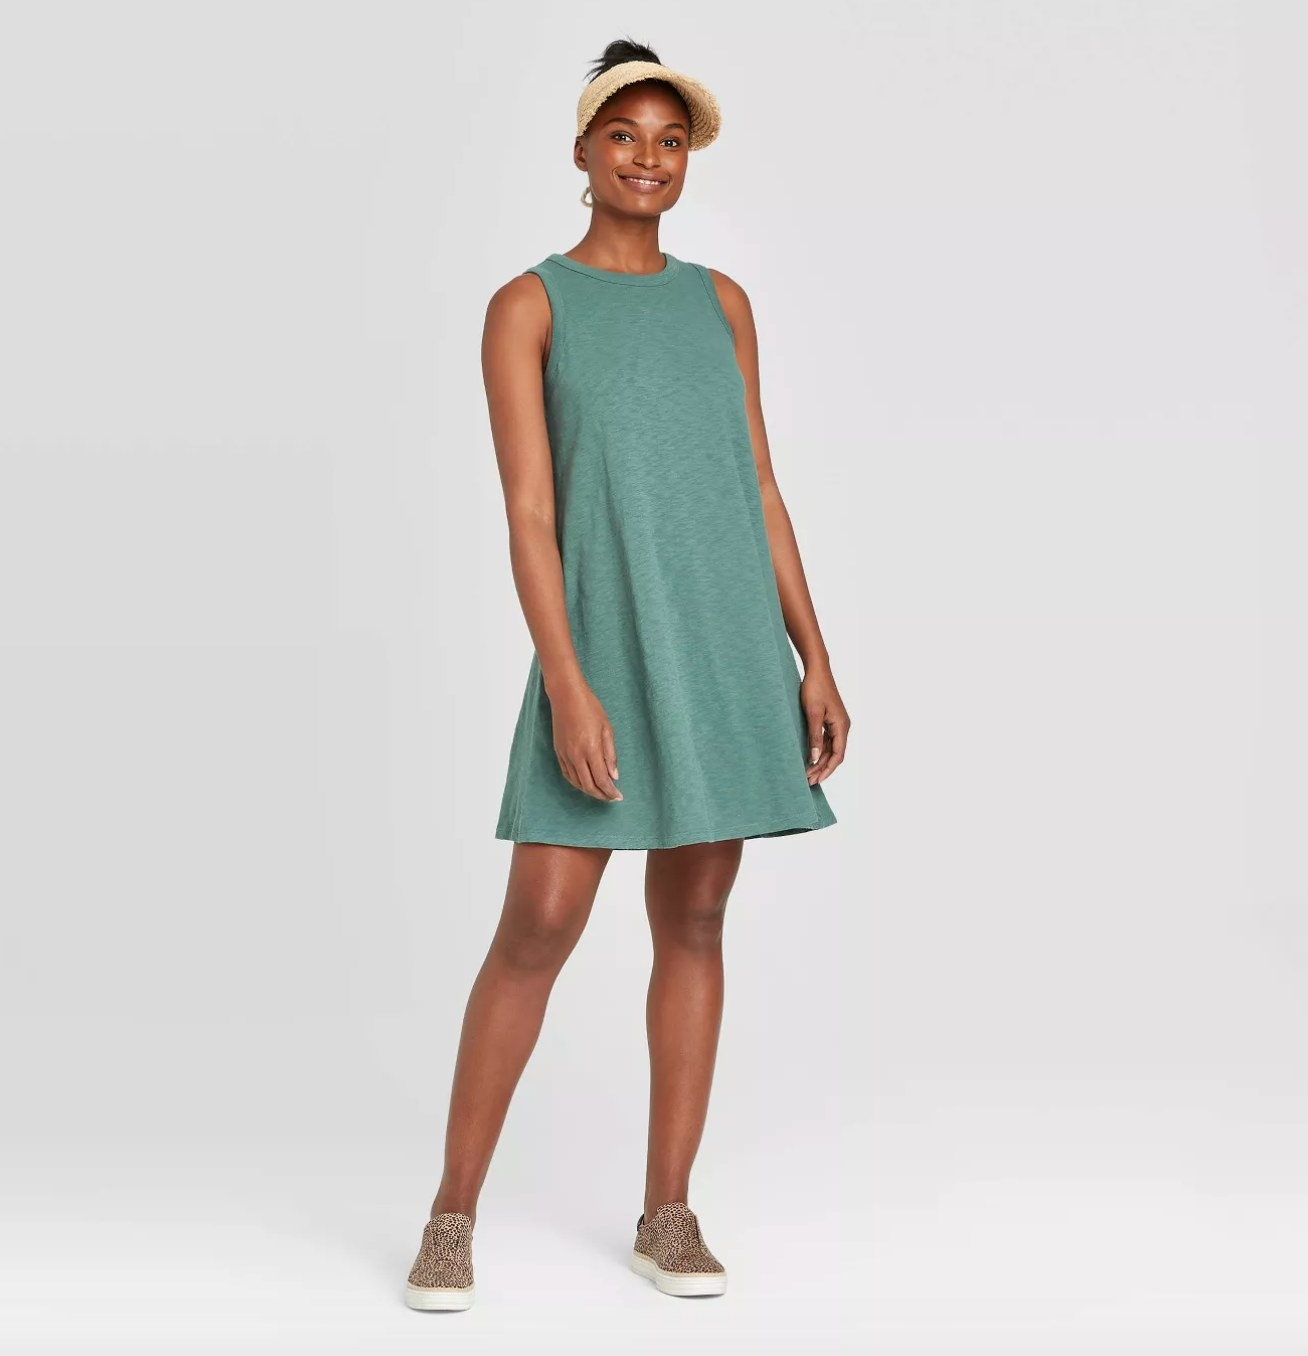 Model wearing the dress in teal